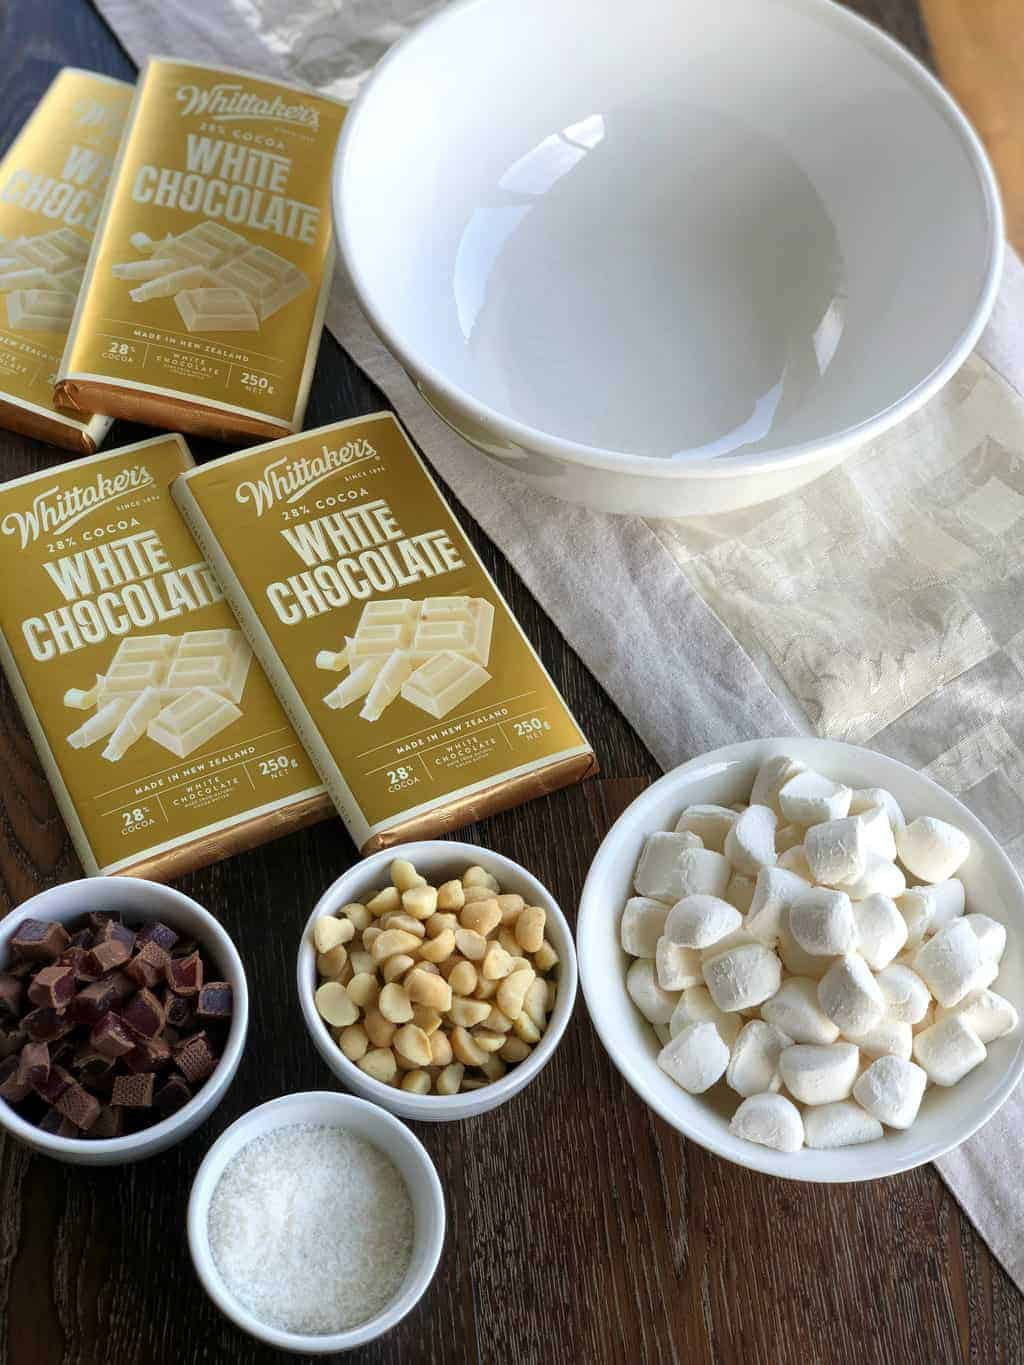 Ingredients for White Chocolate Rocky Road